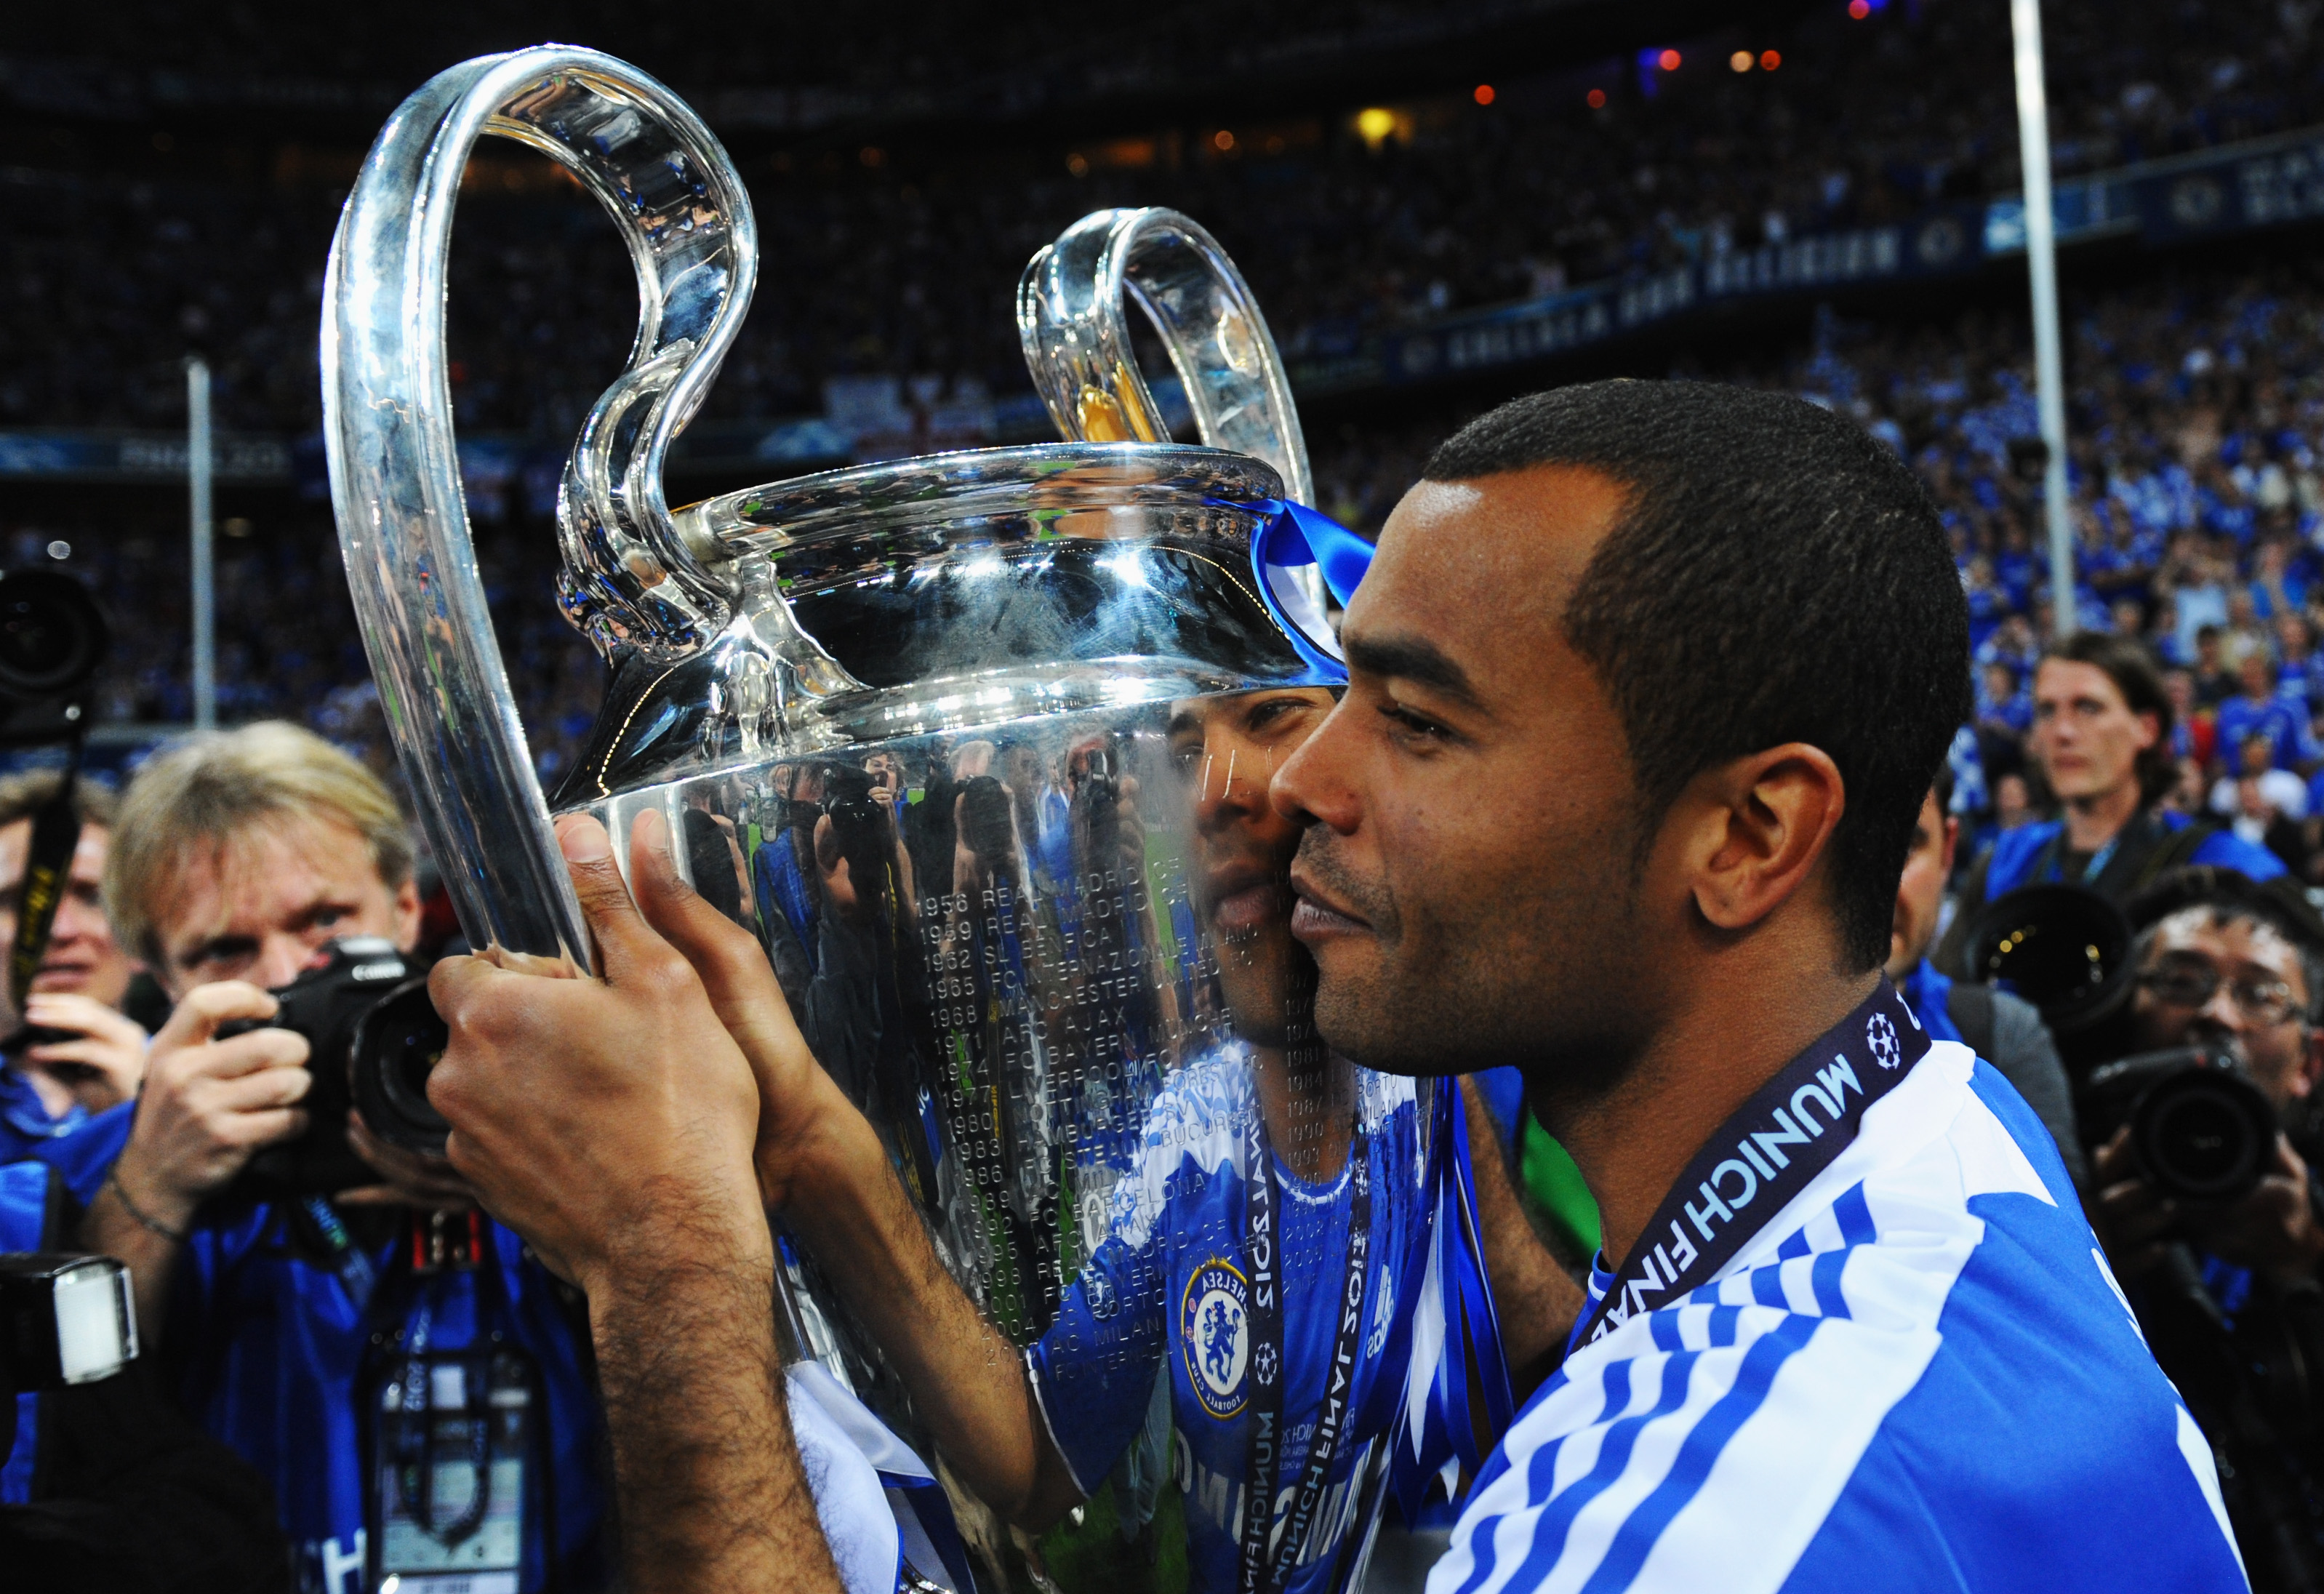 Ashley Cole aims to join Chelsea staff after retiring from play